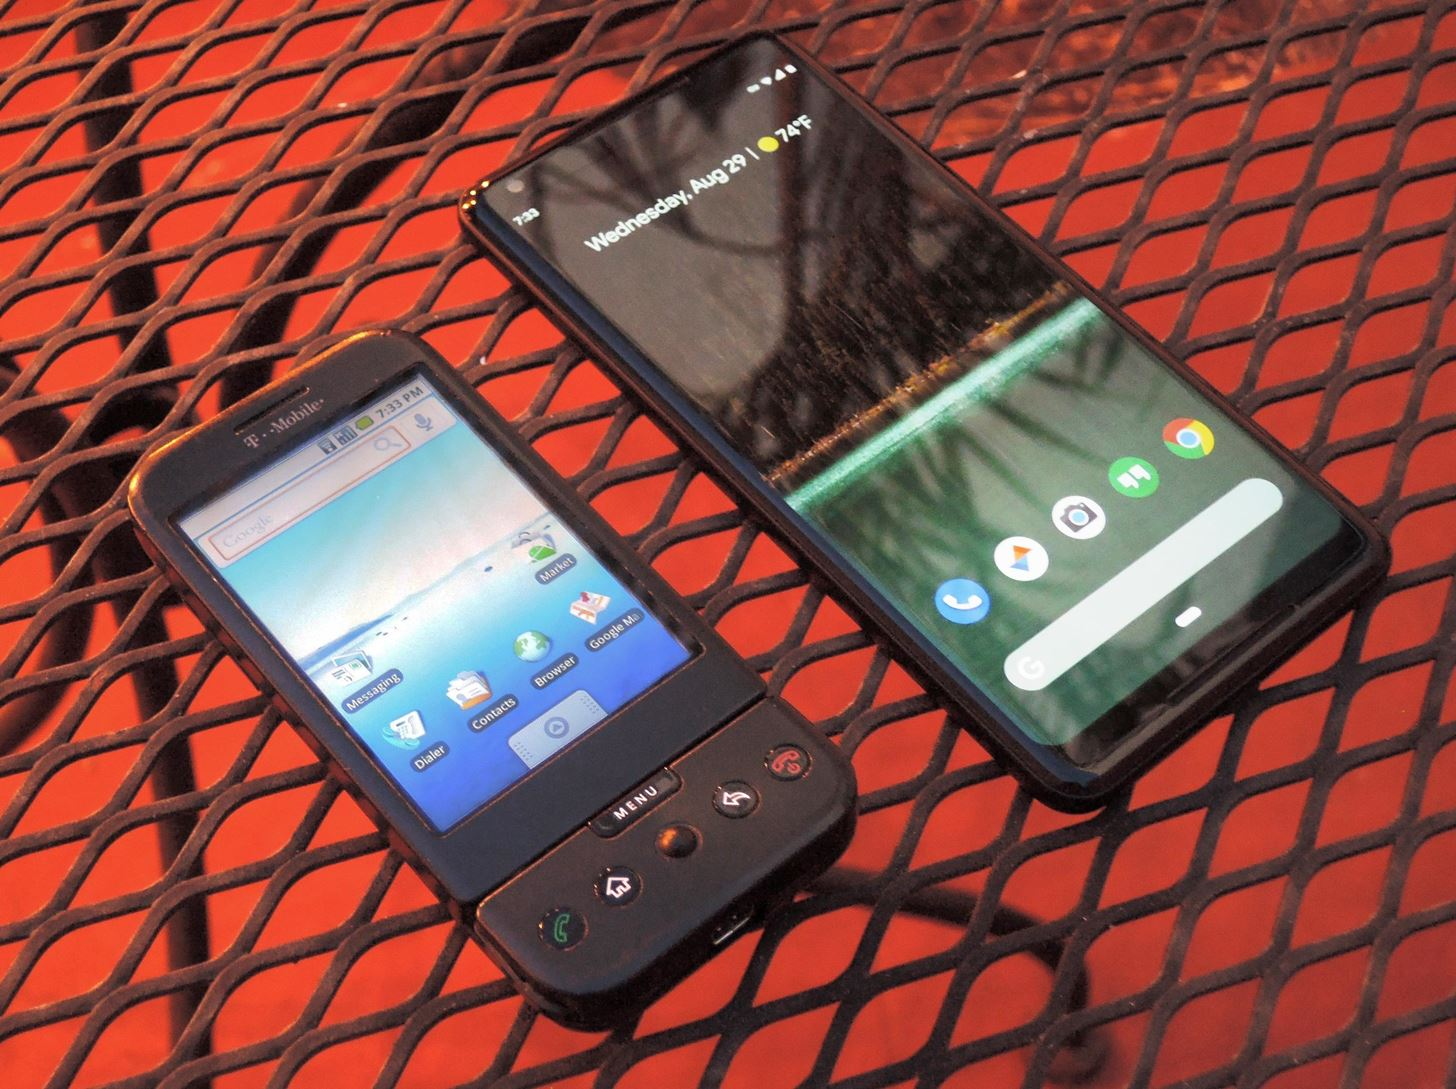 Hands-on with the World's First Android Phone — What a Difference a Decade Makes